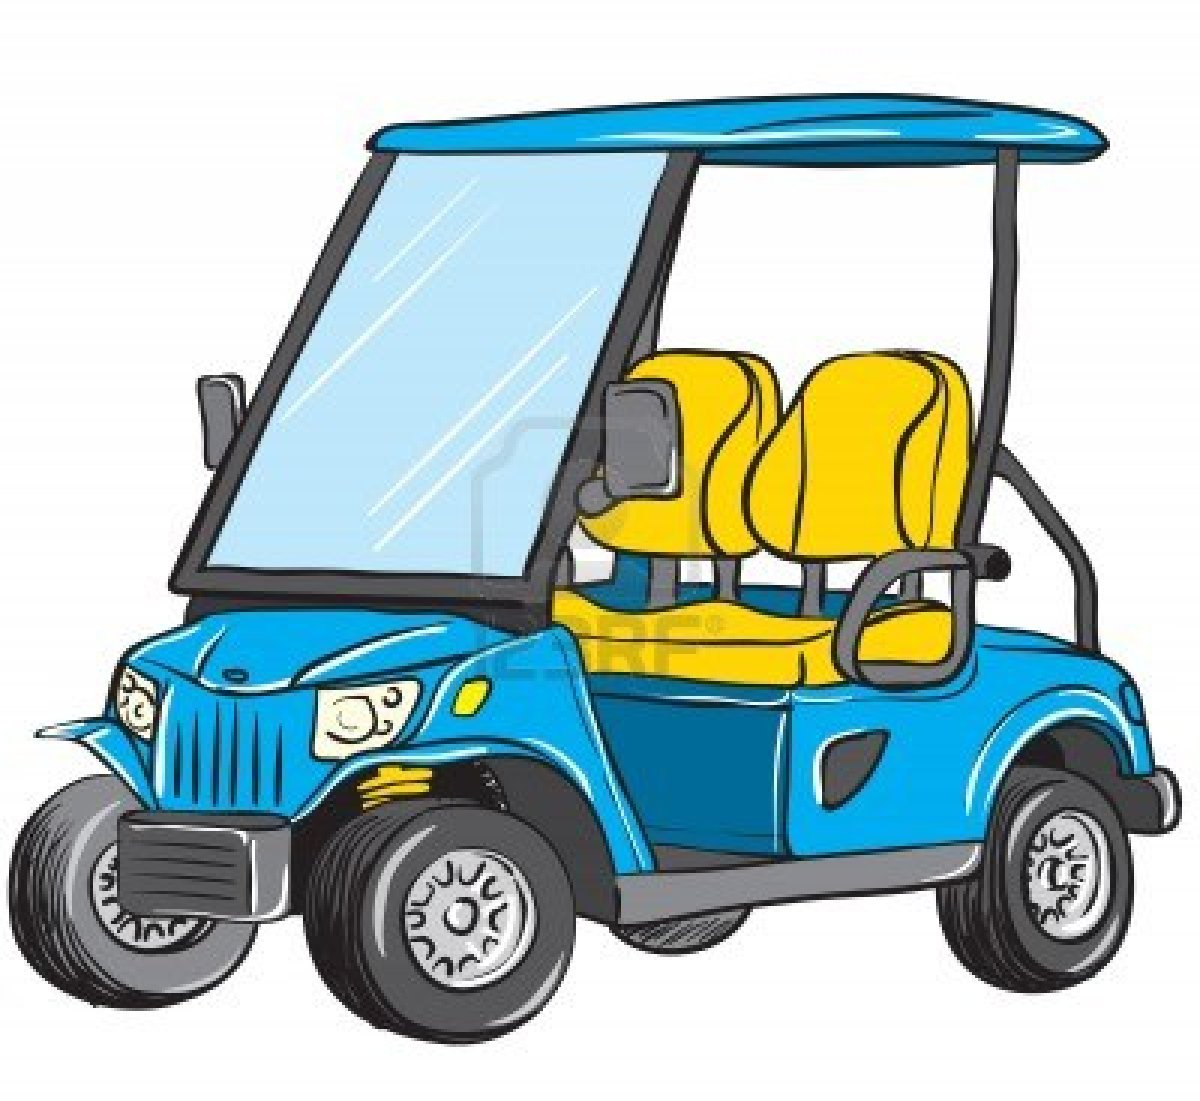 Free cart download clip. Golfer clipart golf buggy